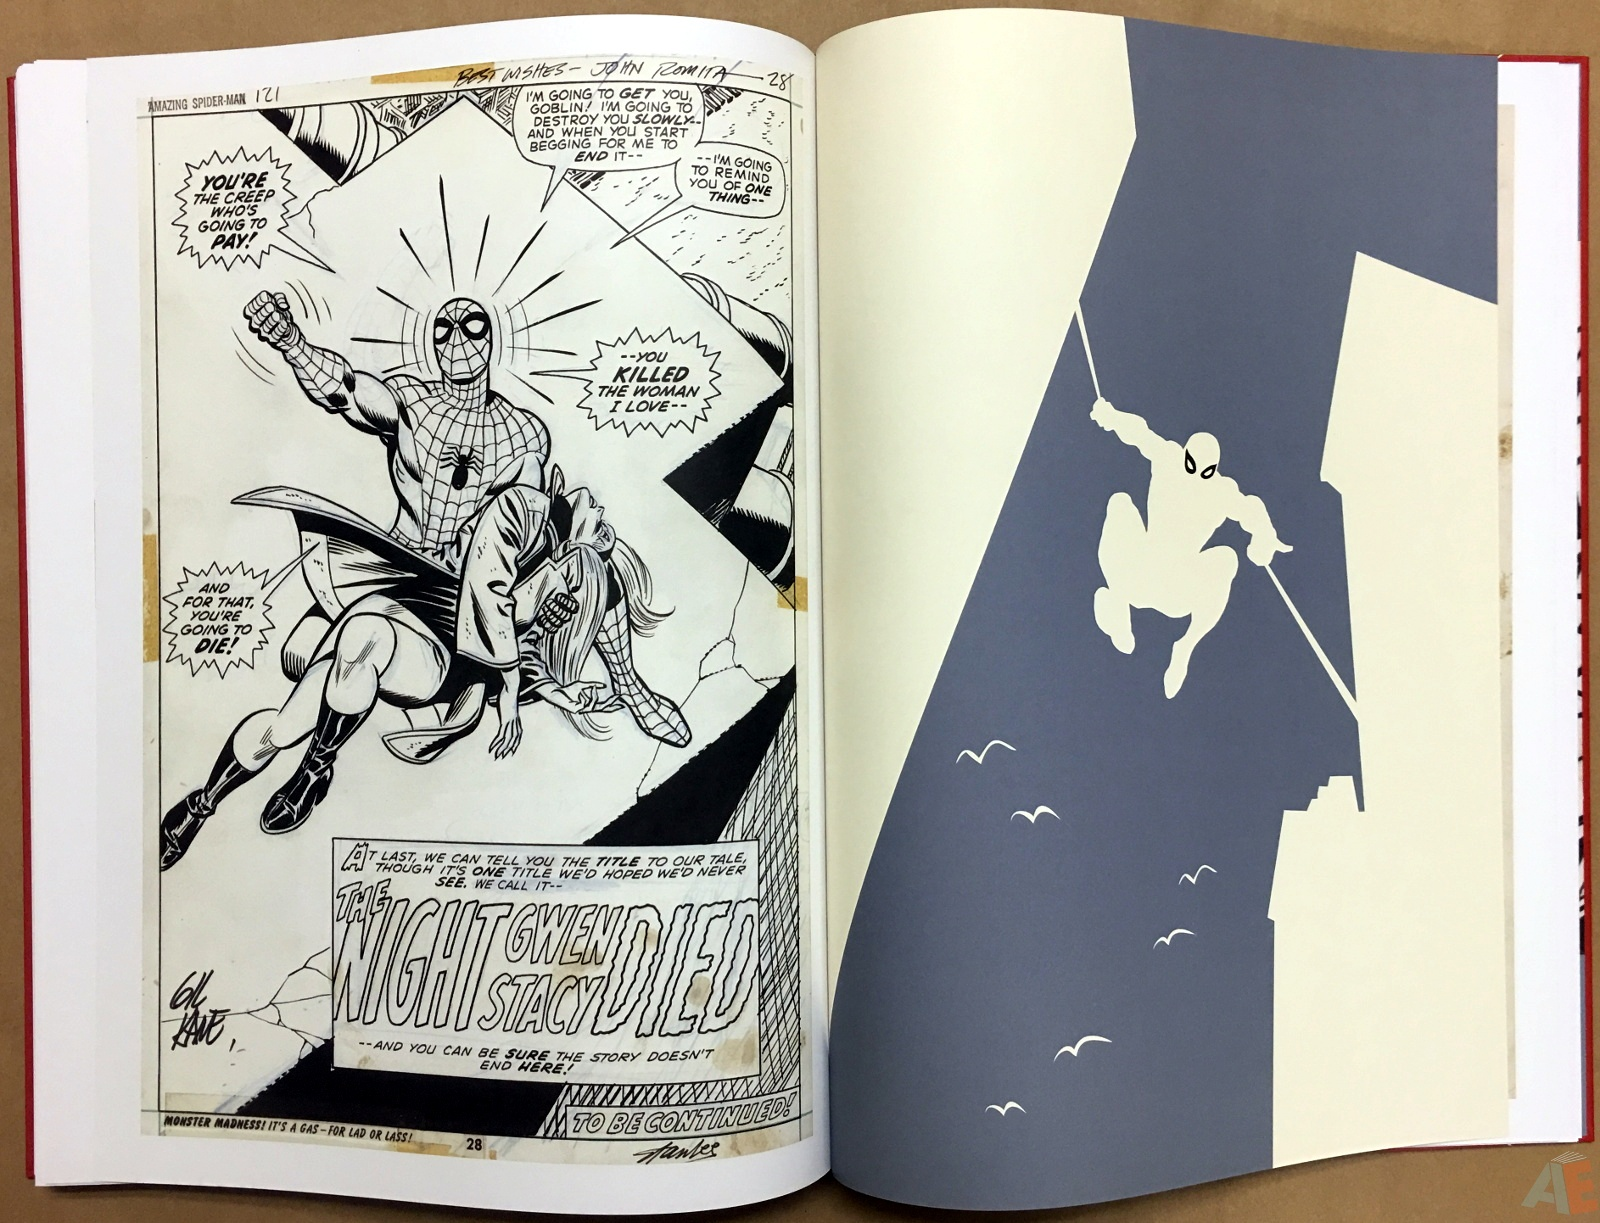 Gil Kane's The Amazing Spider-Man Artist's Edition